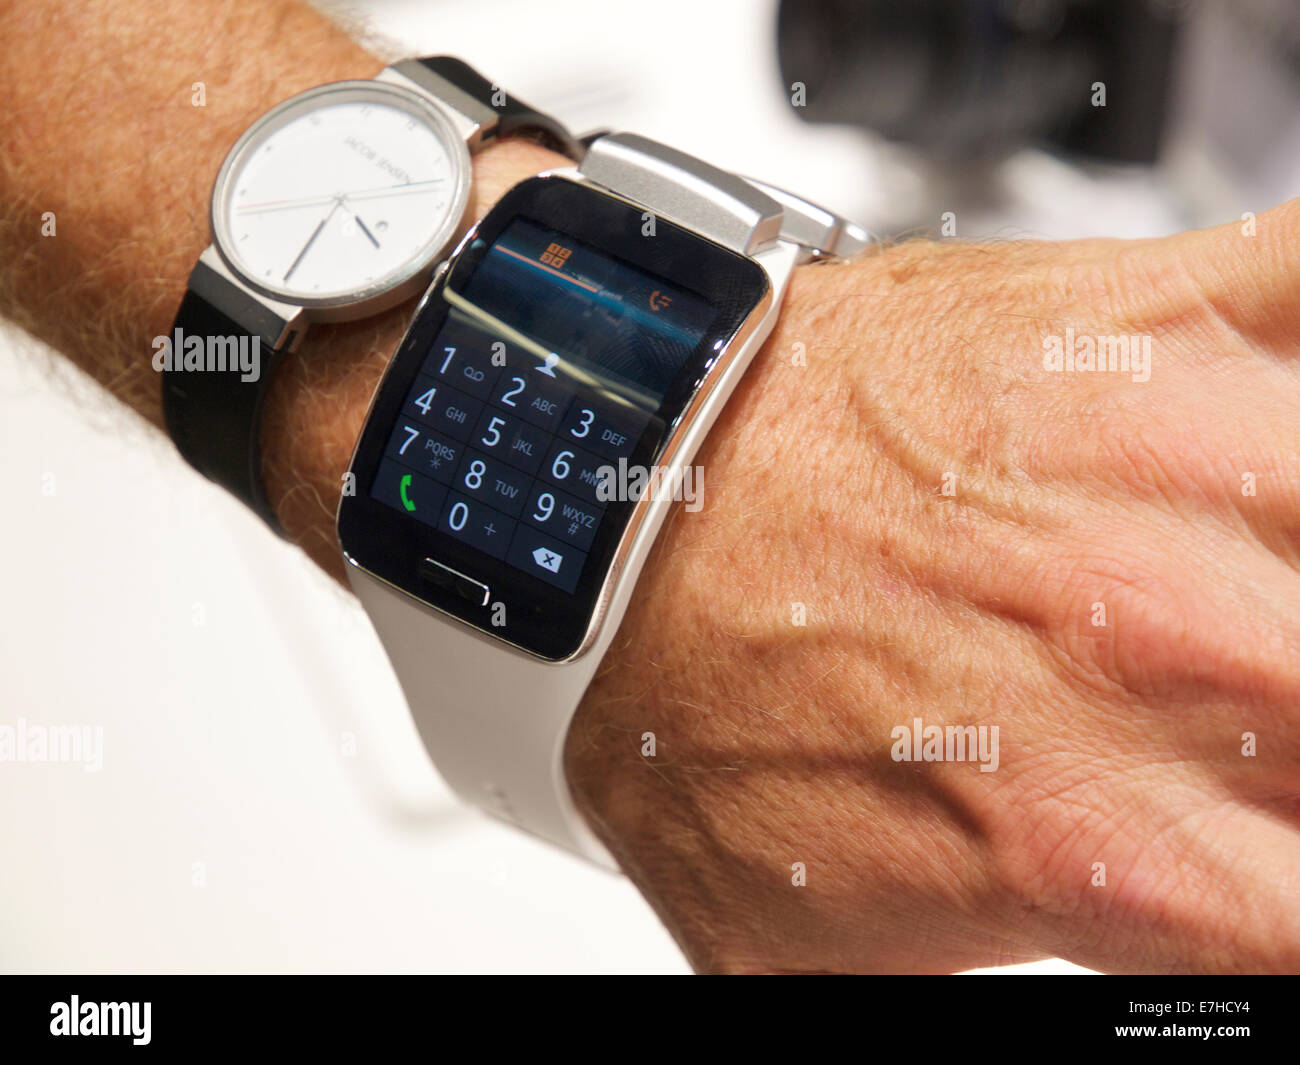 Trying on the latest Samsung smartwatch to see how it compares to a normal watch. Cologne, Germany - Stock Image